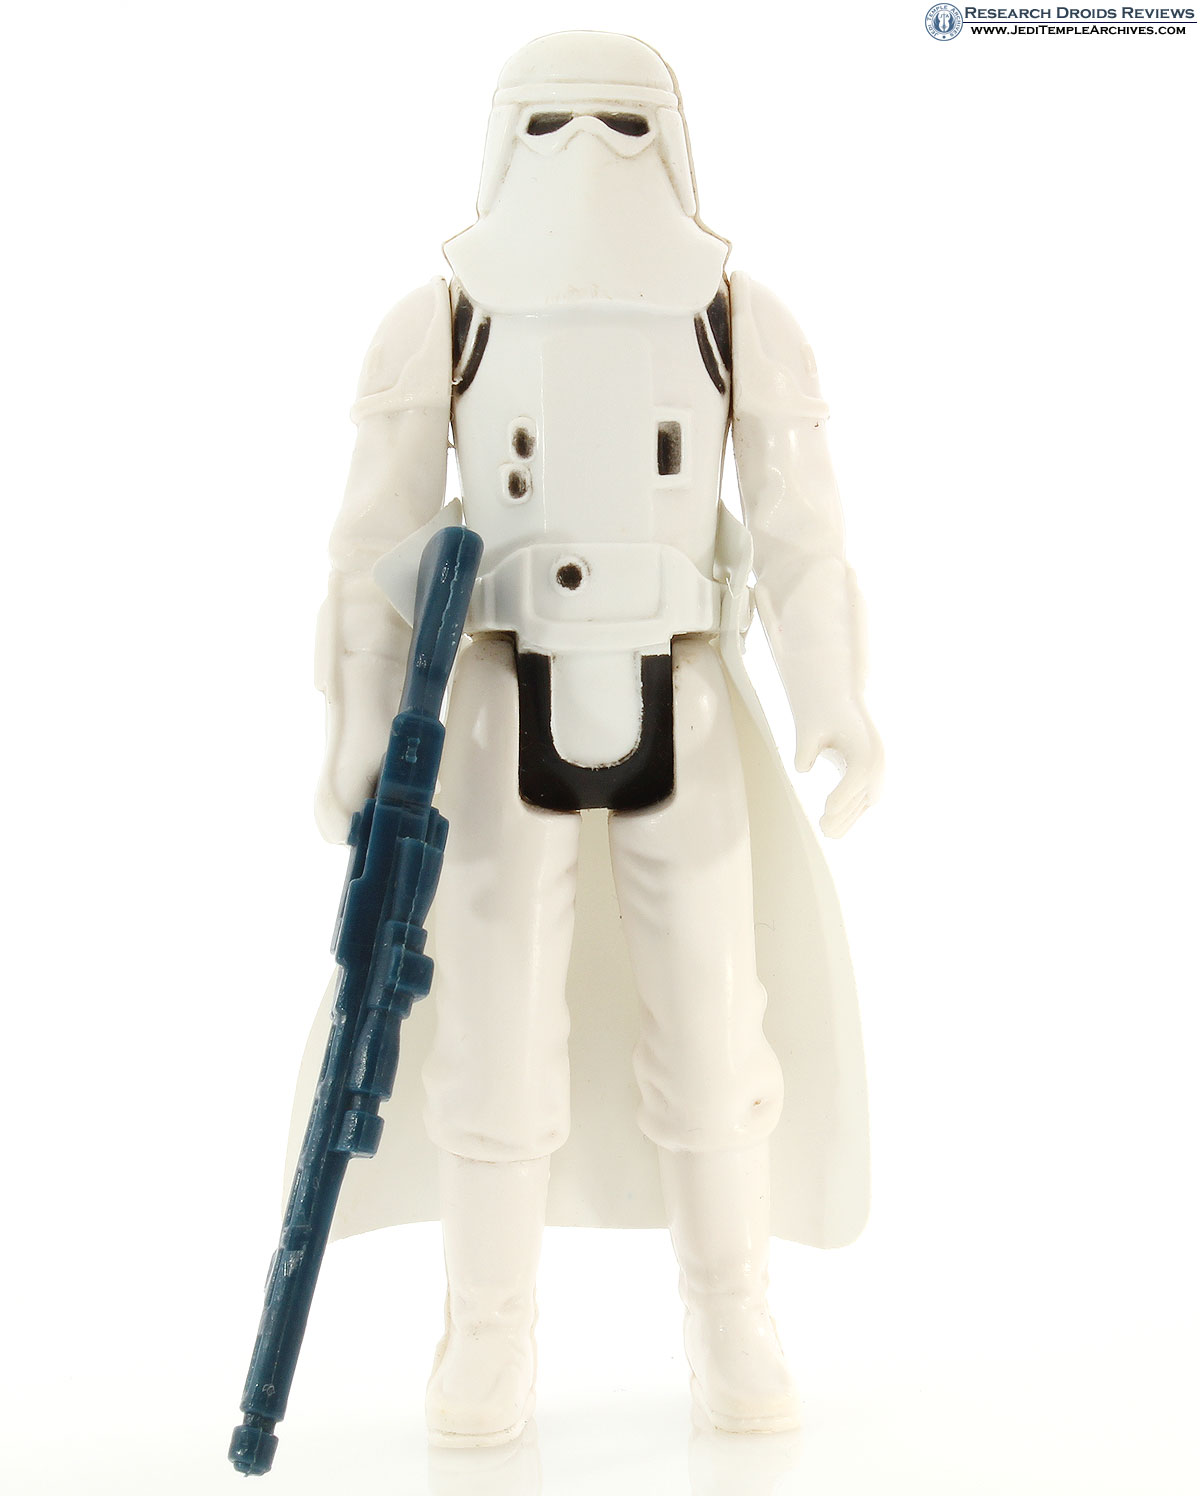 Imperial Stormtrooper Hoth Battle Gear